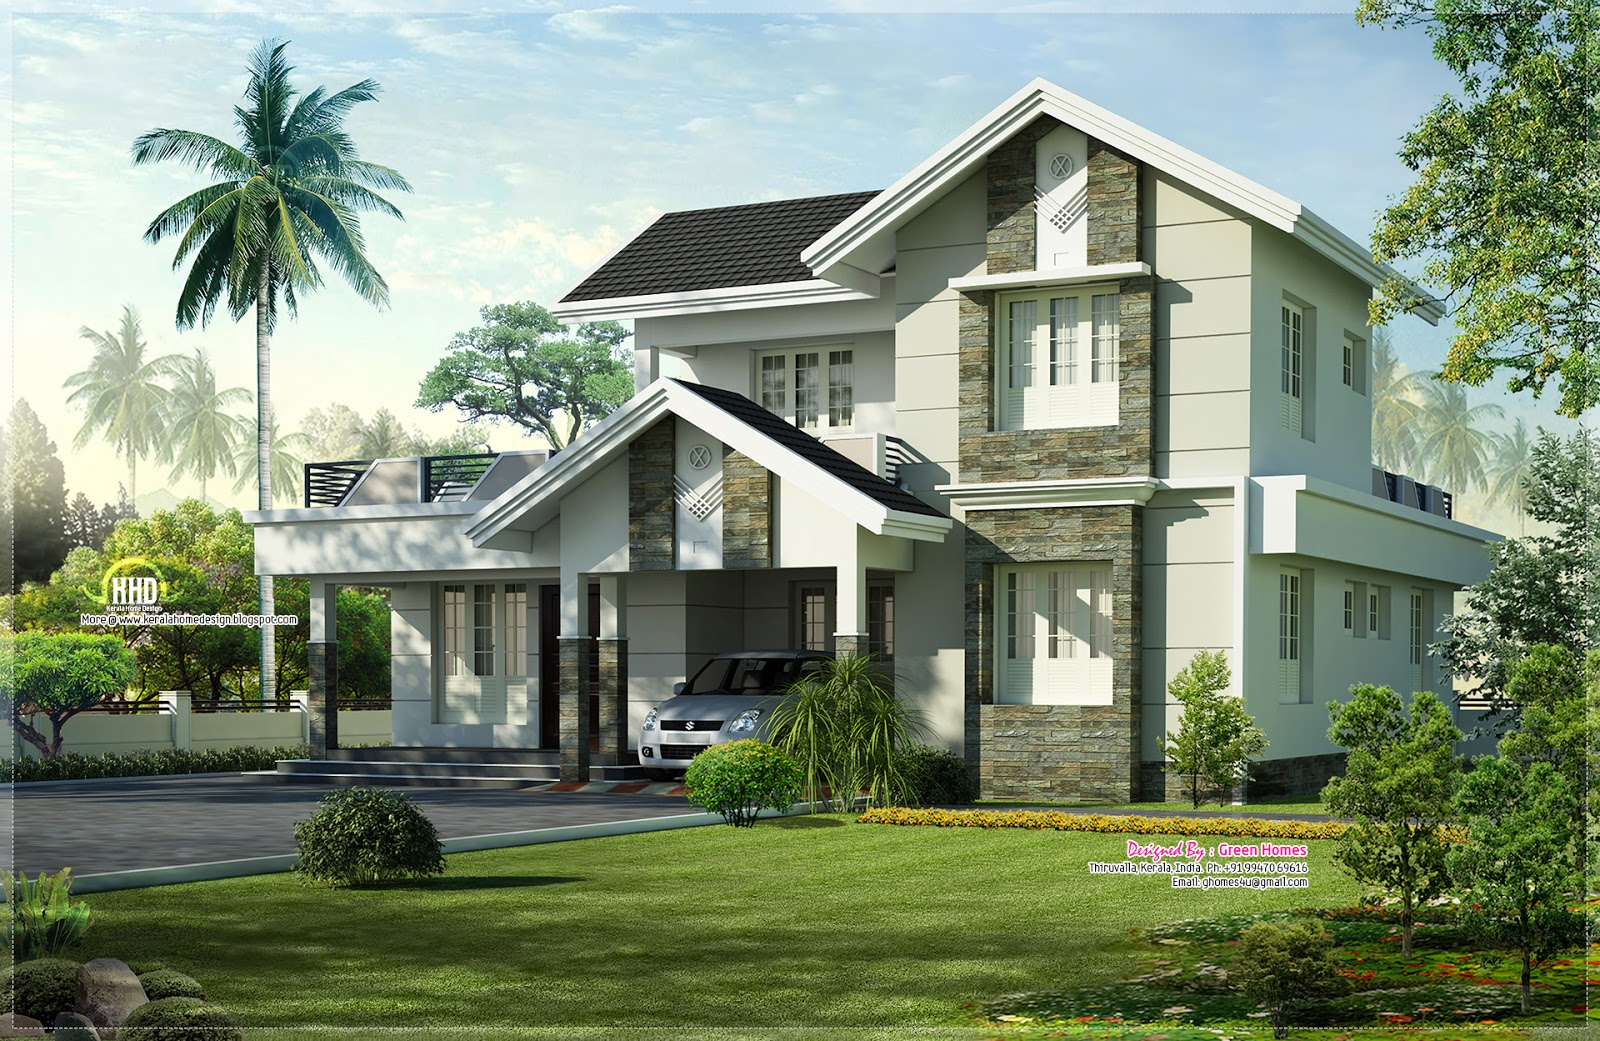 1975 nice home exterior design kerala home Good homes design